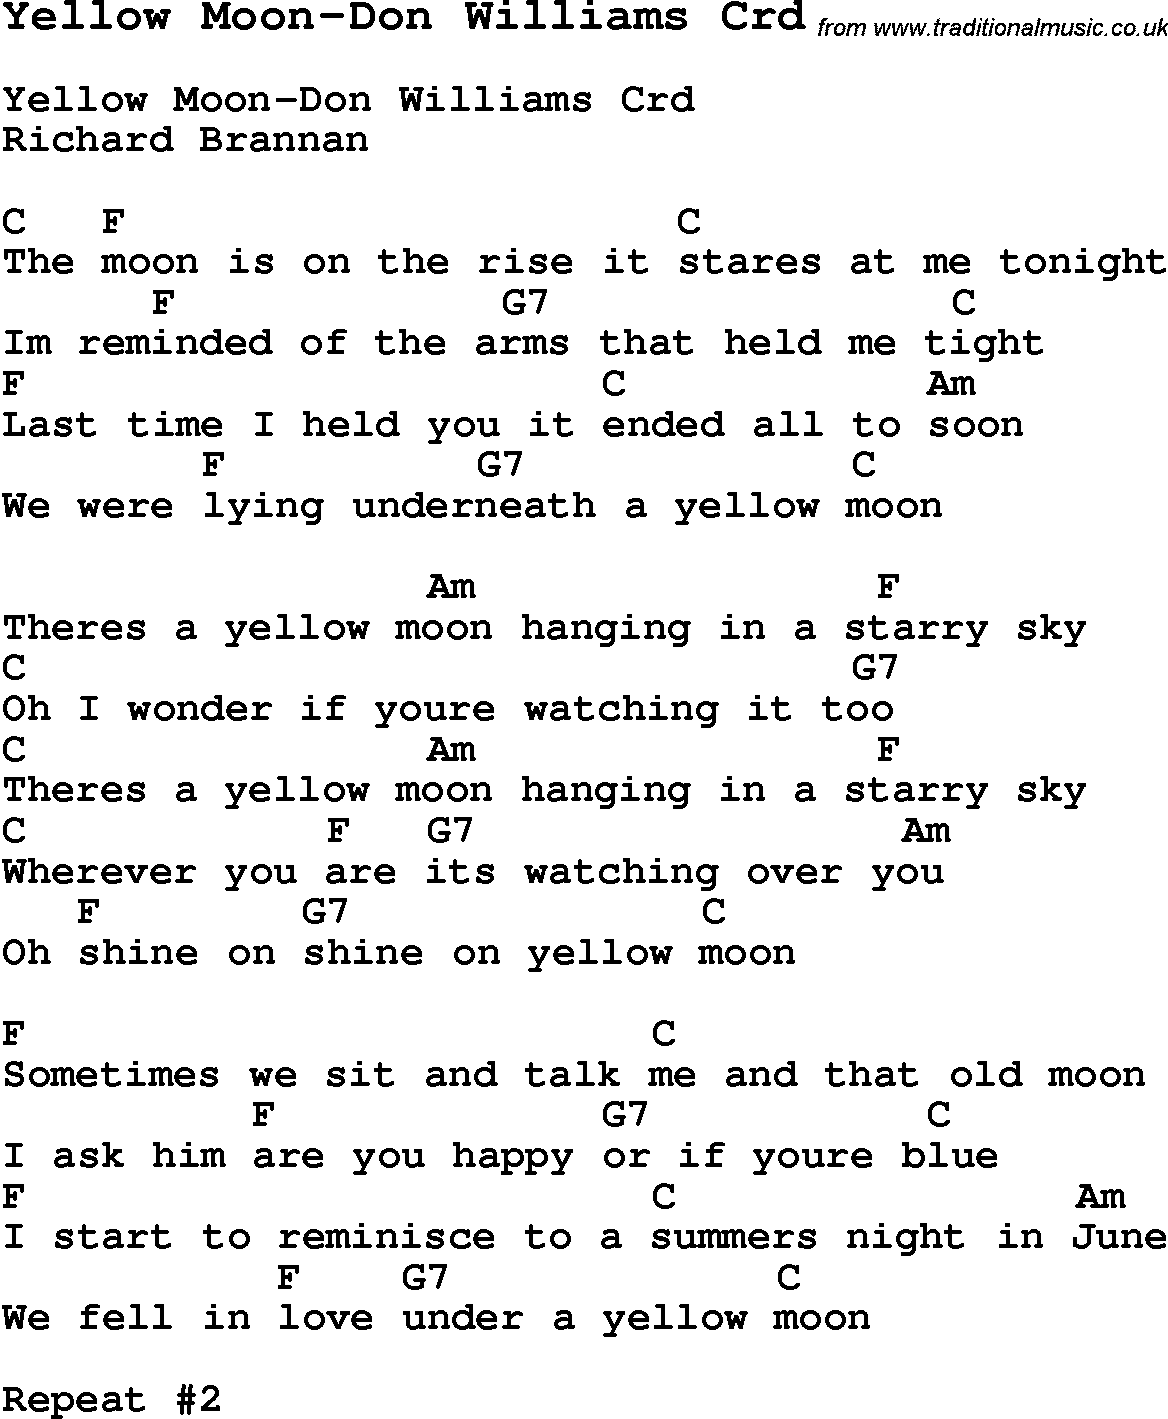 Skiffle lyrics for yellow moon don williams with chords for skiffle song lyrics for yellow moon don williams with chords for mandolin ukulele hexwebz Image collections